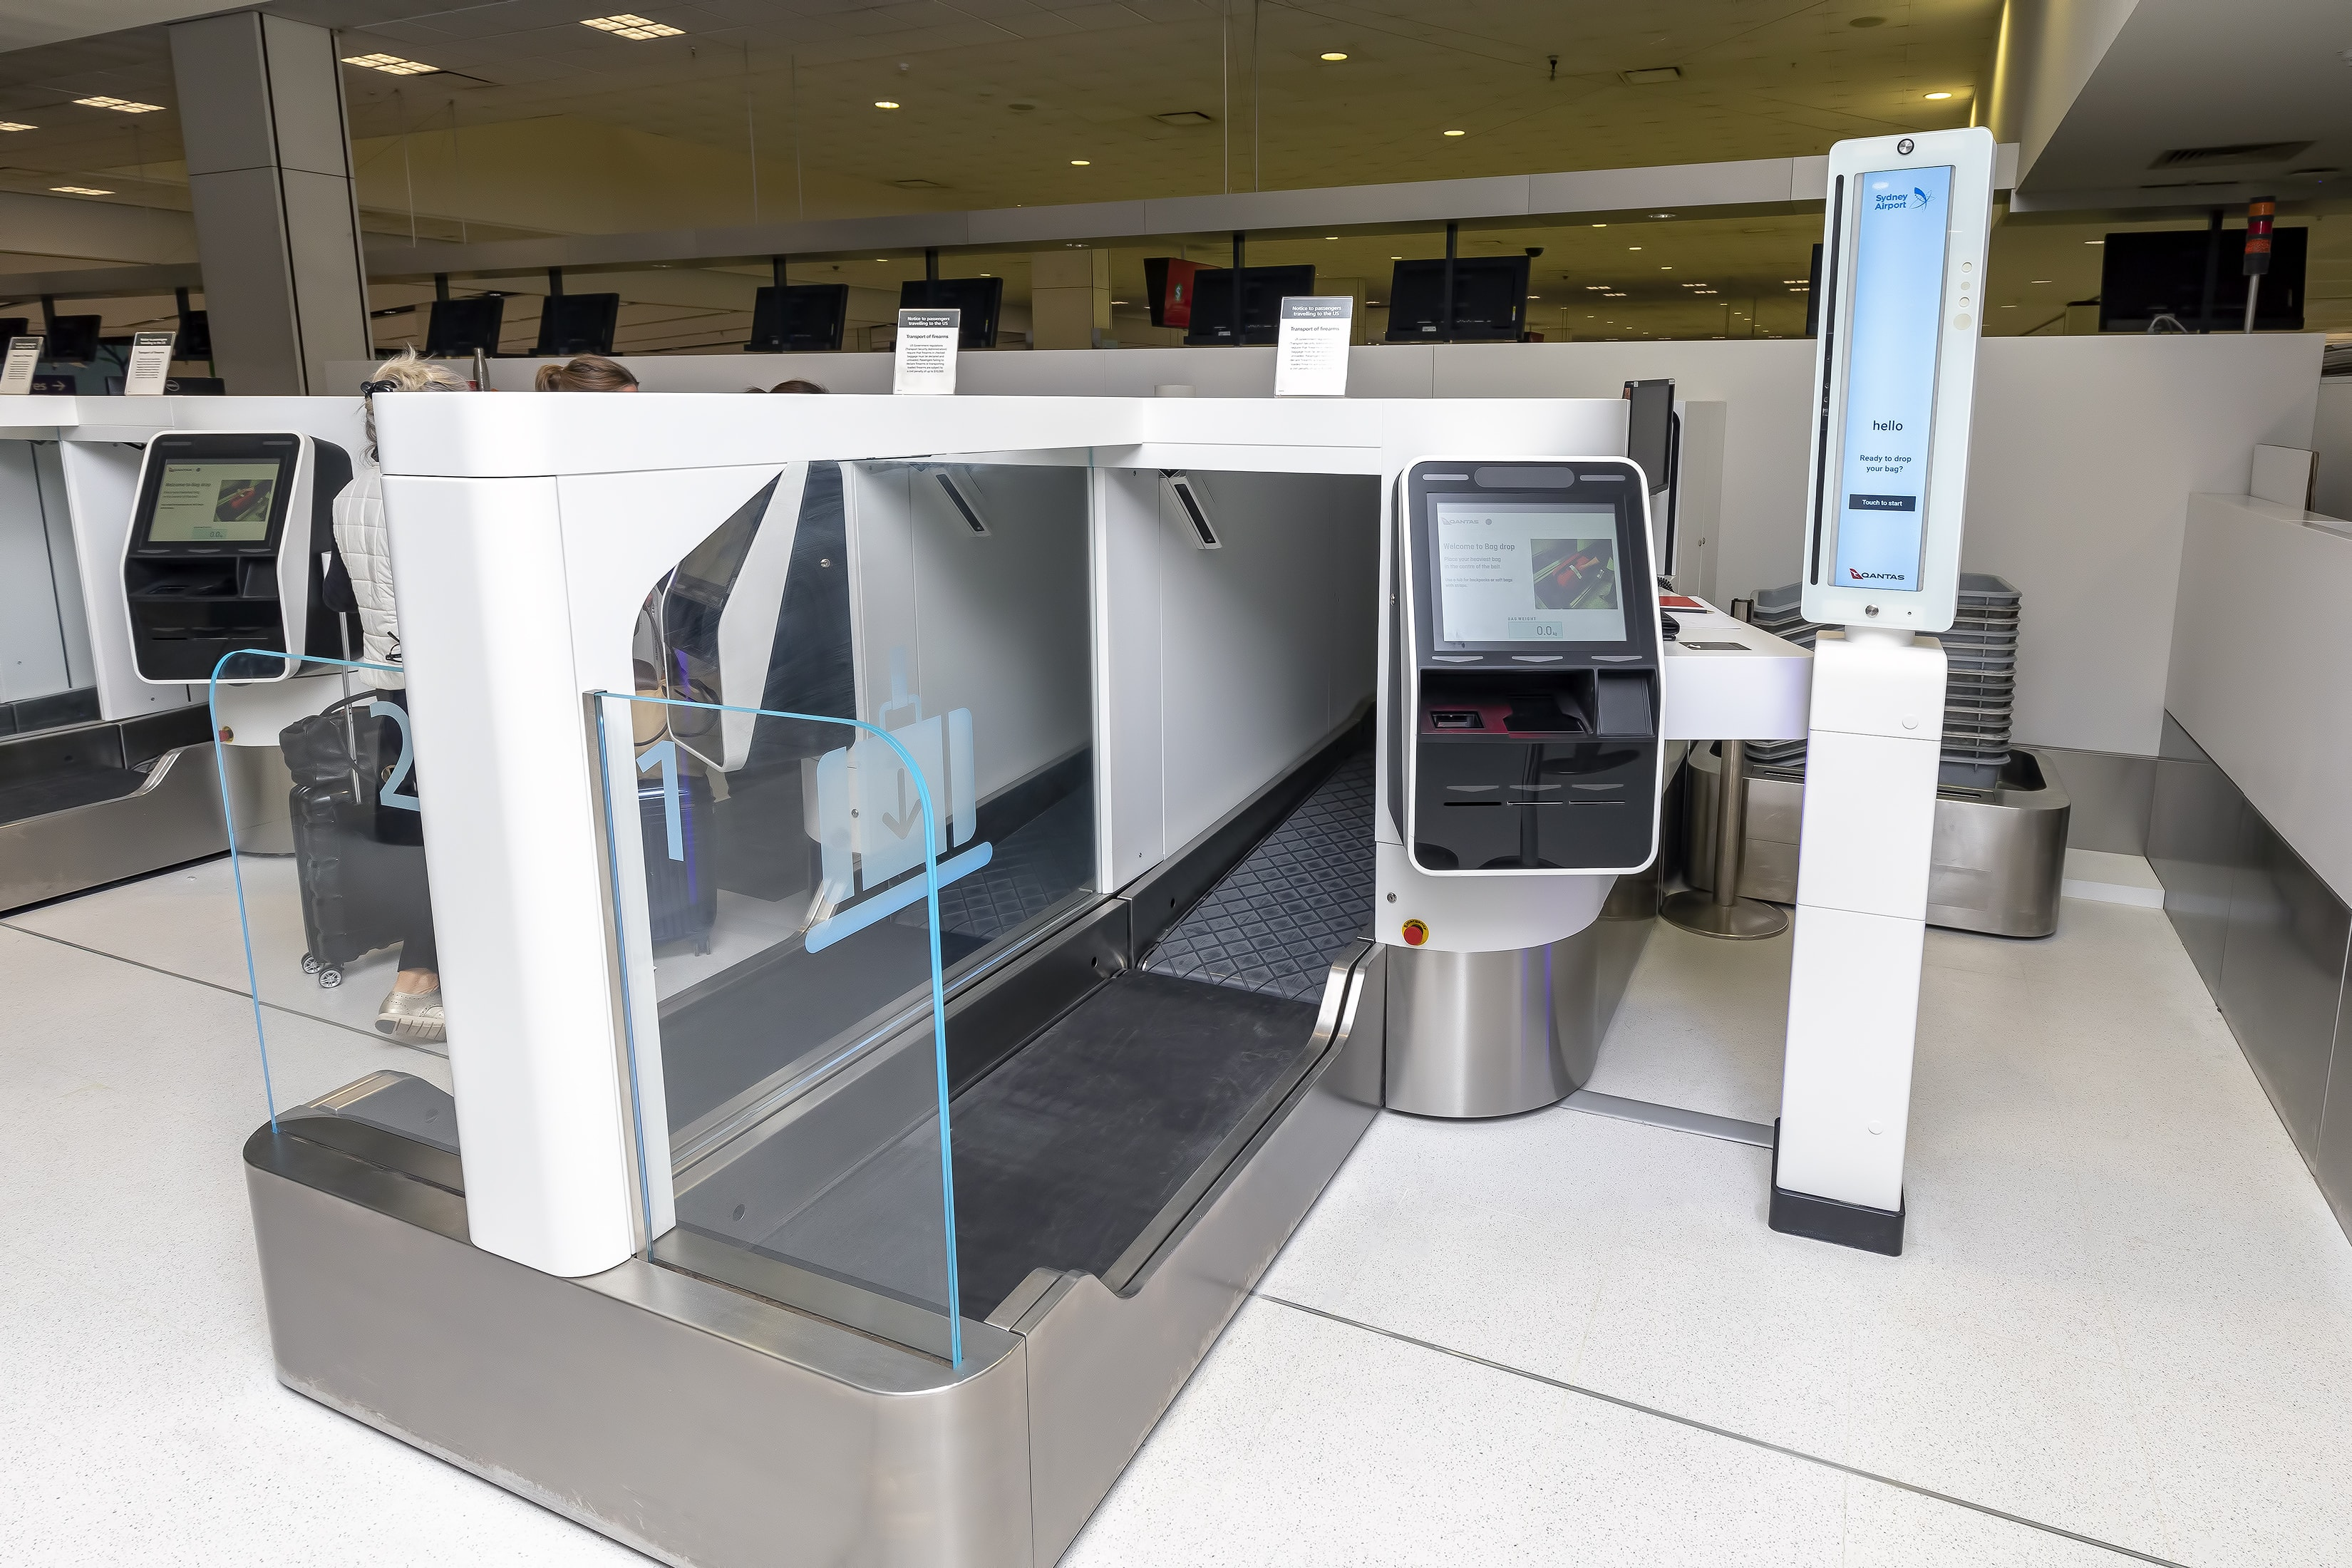 Qantas trialling end-to-end facial recognition security system at Sydney Airport - Passenger Terminal Today